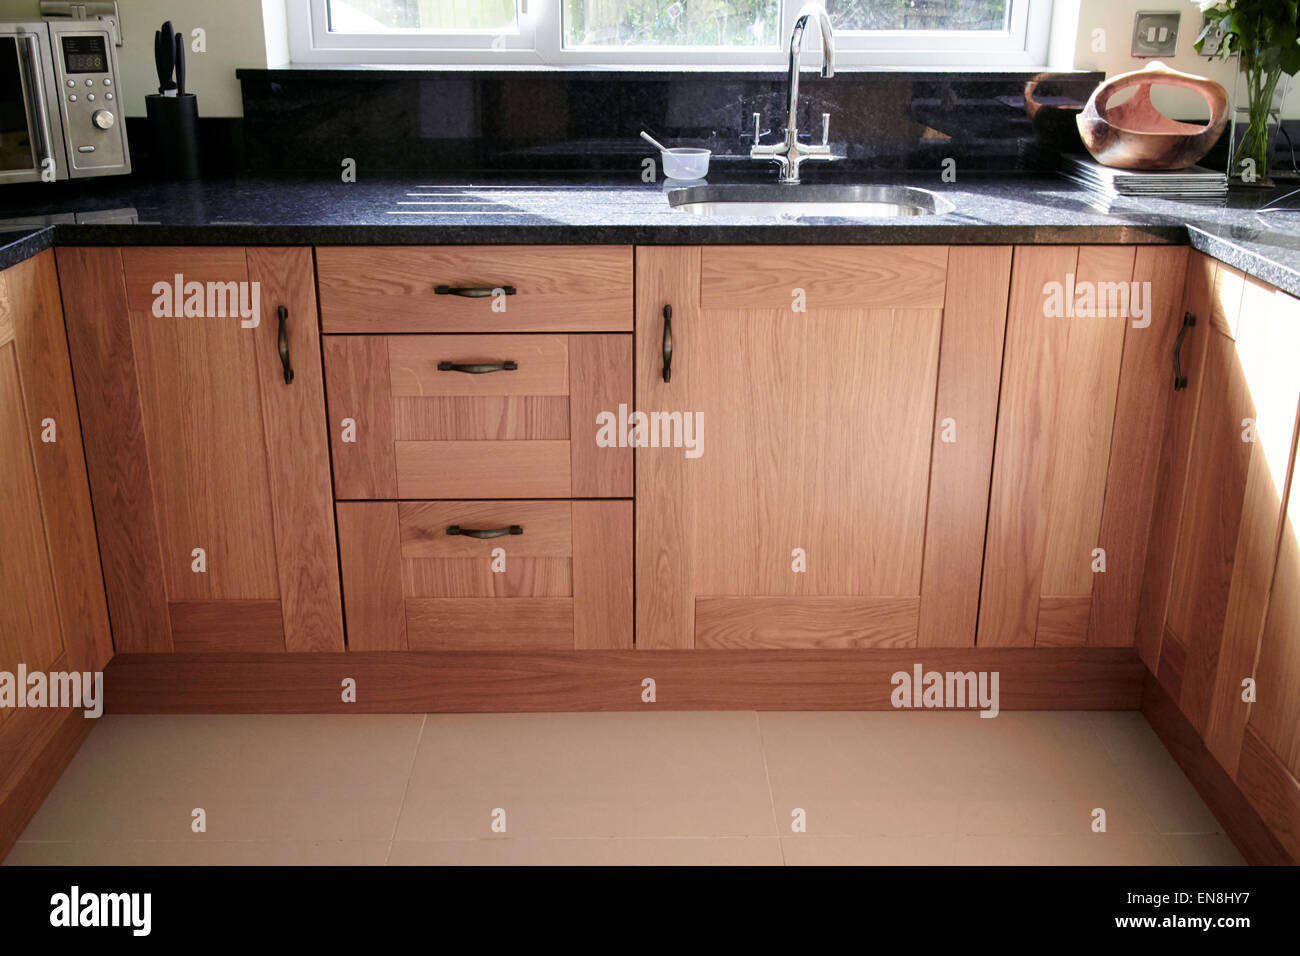 brand new kitchen cabinets and granite worktops in a new build property in the uk Stock Photo